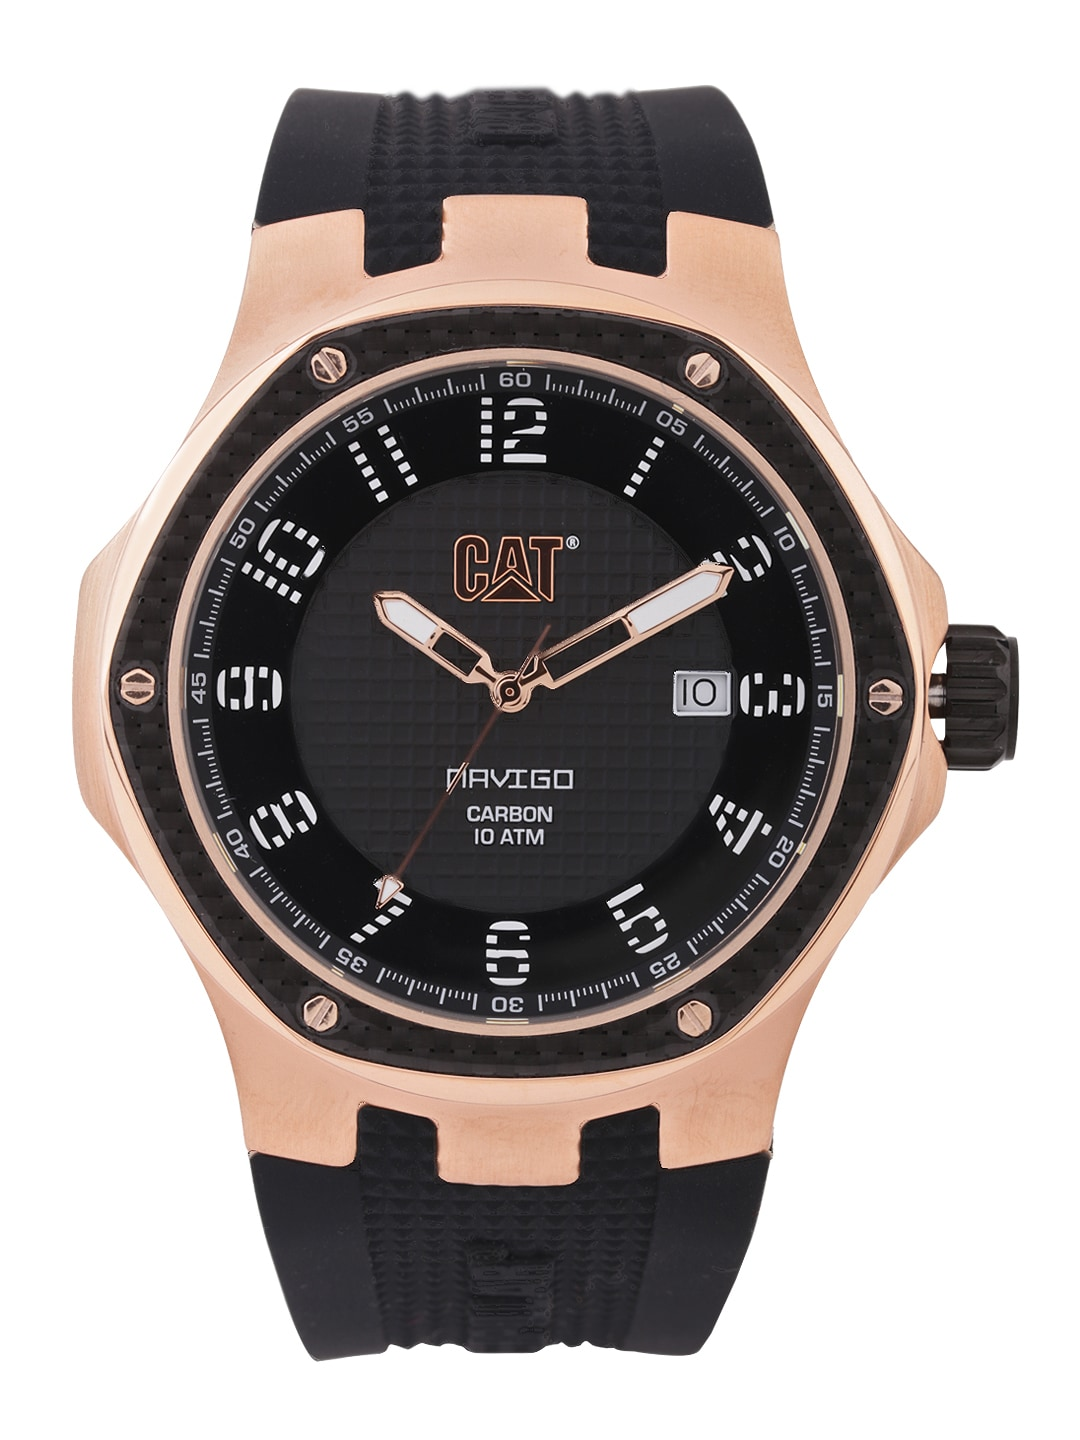 Cat CAT Men Black Dial Watch A5.191.21.119